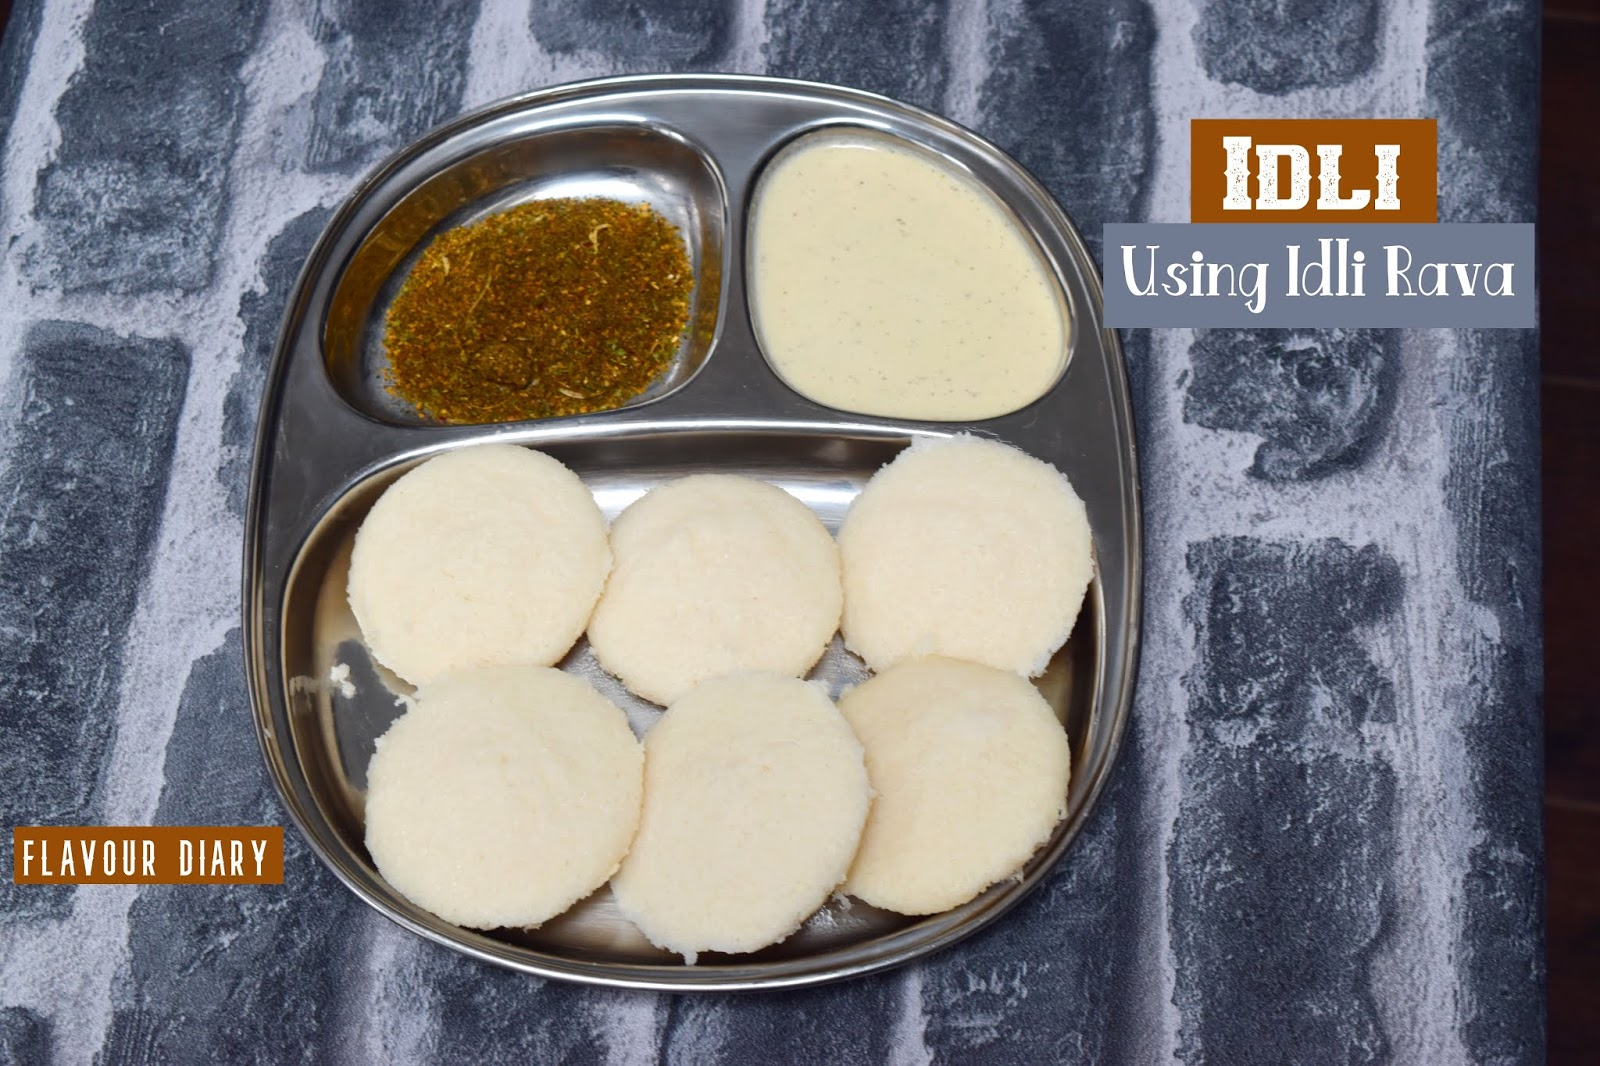 Idli recipe using Idli Rava